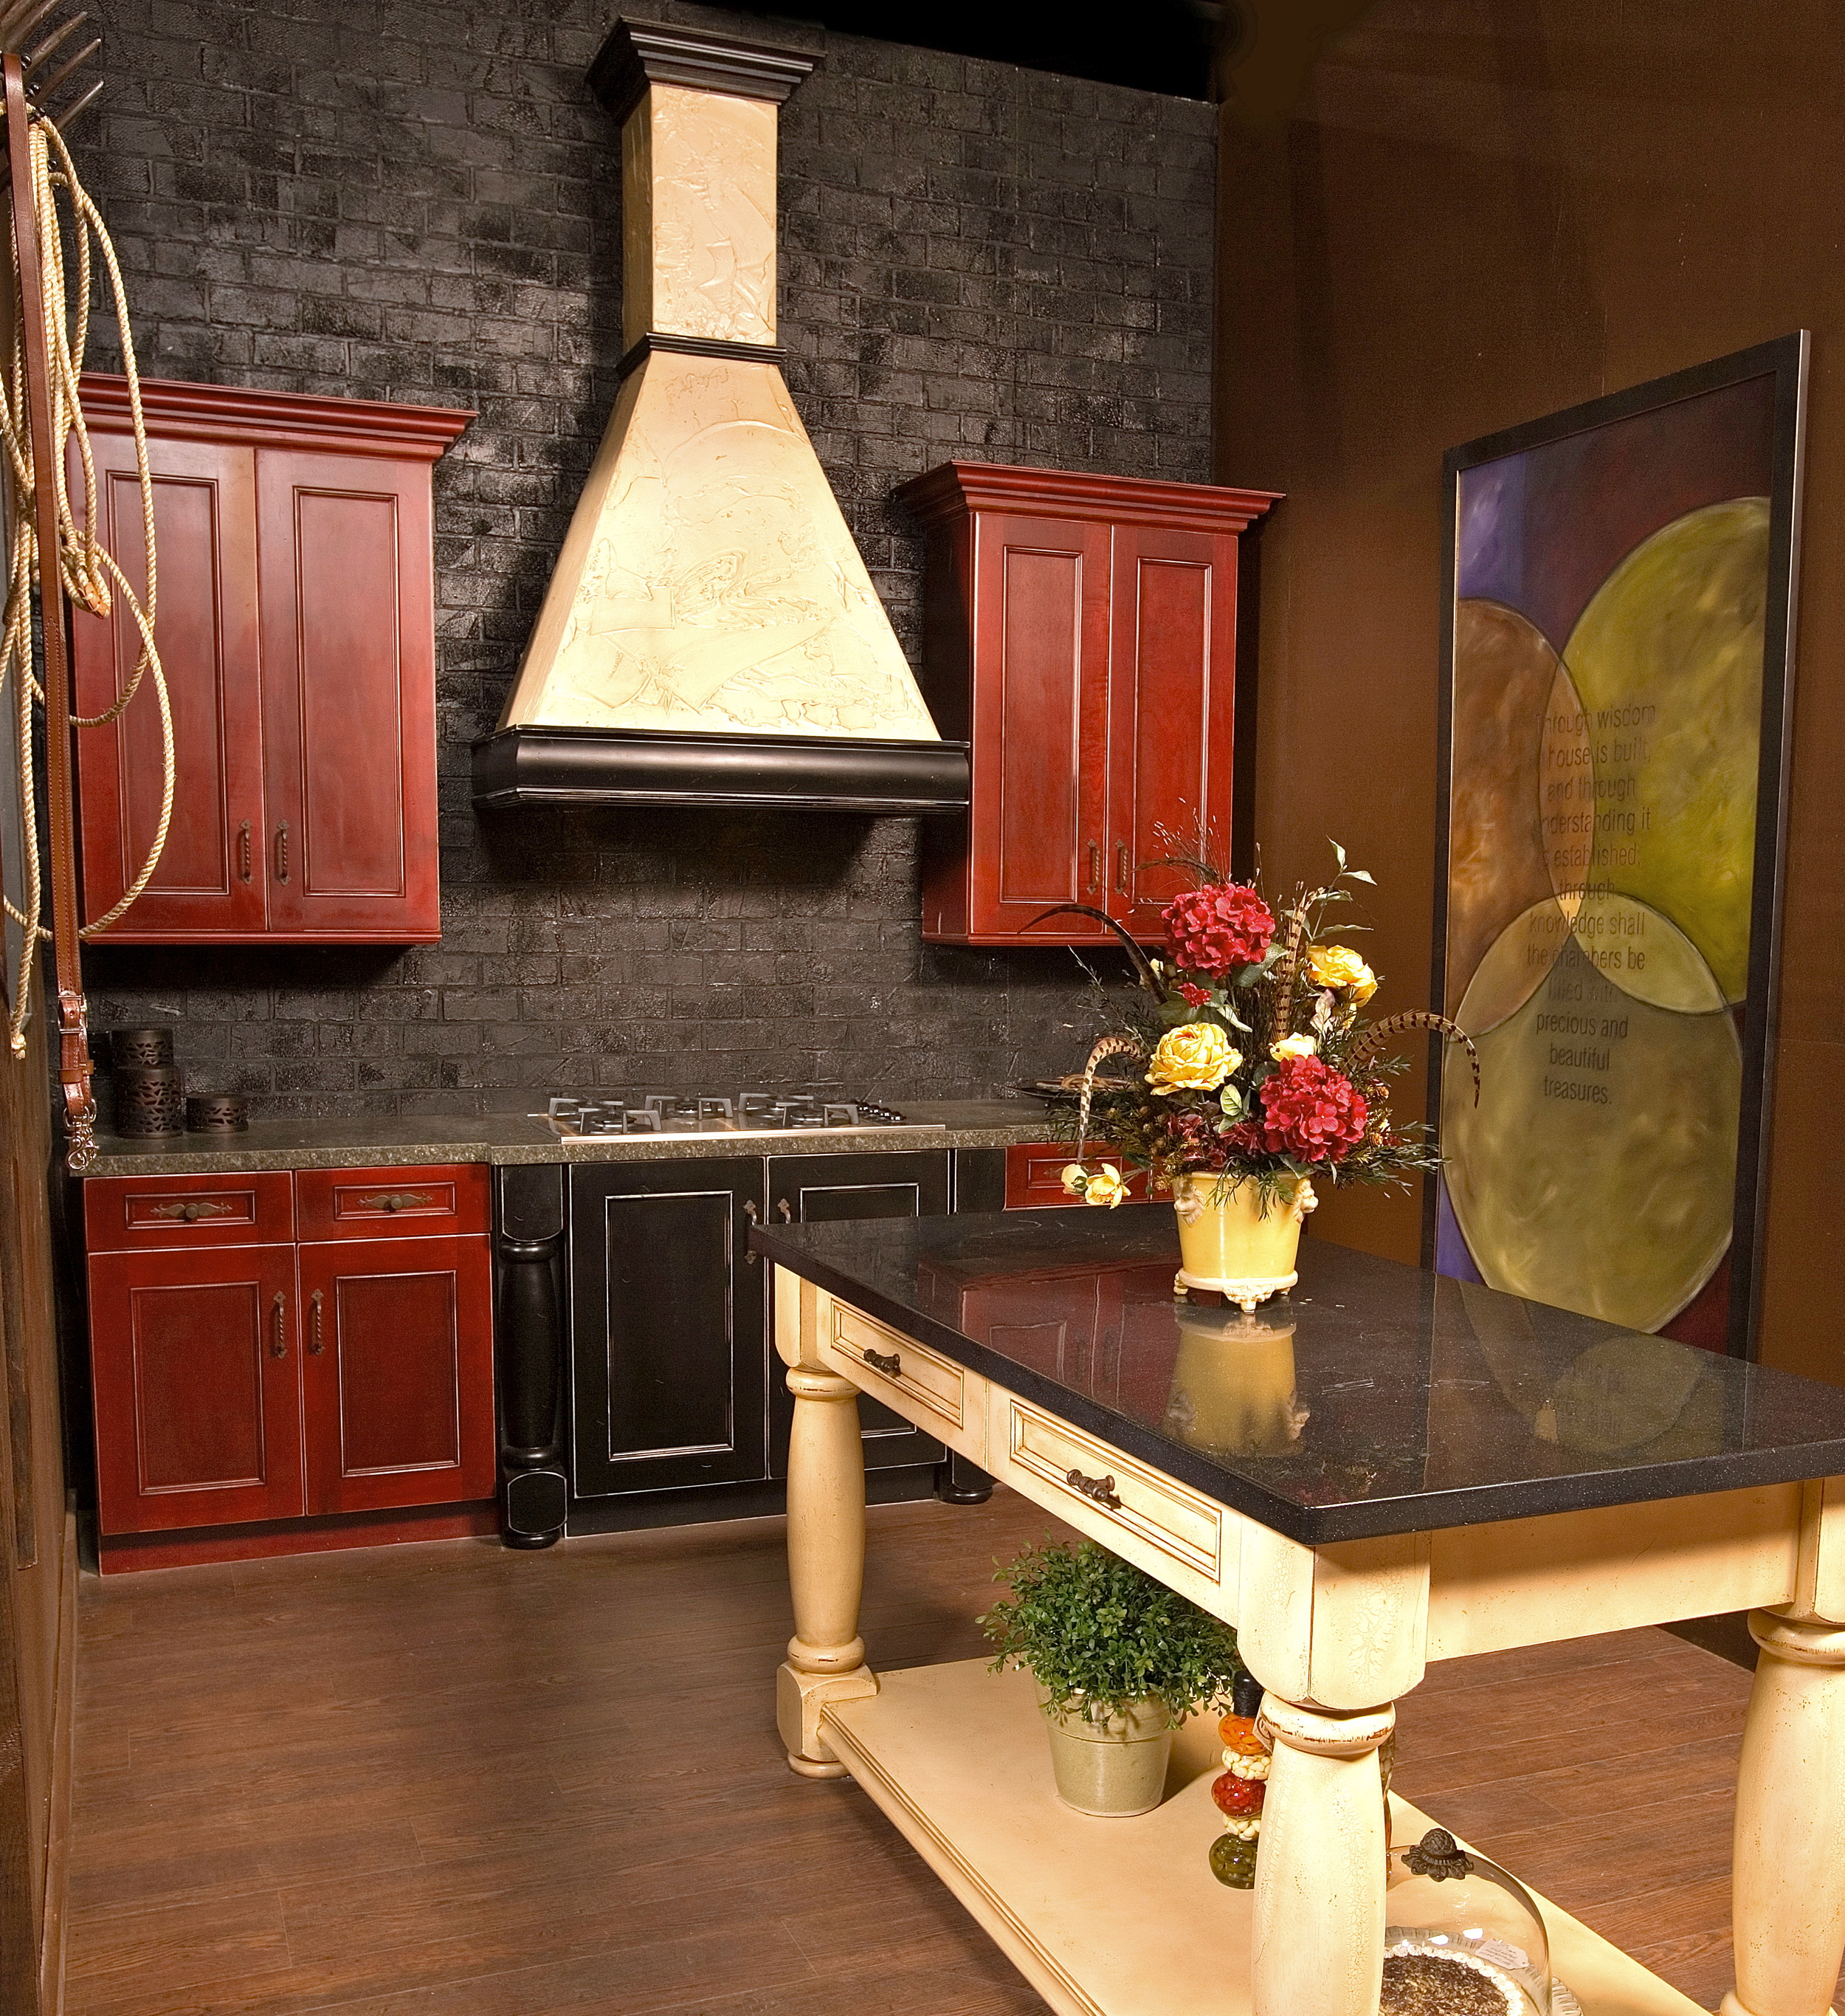 carriage house kitchen.jpg